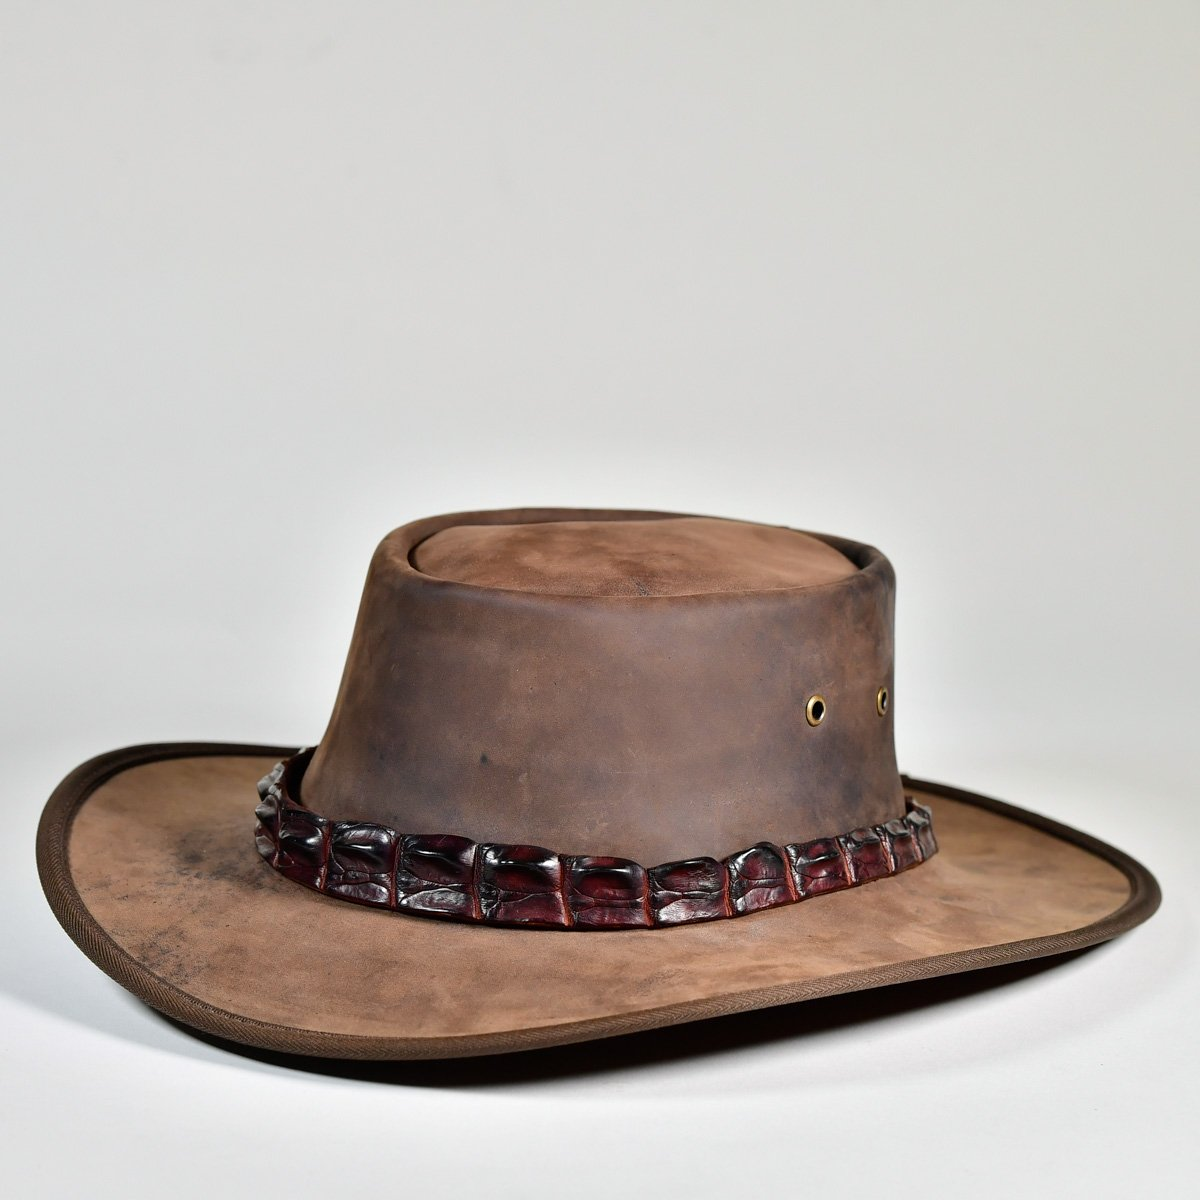 NT Outback Leather Hat with Crocodile Leather Hatband